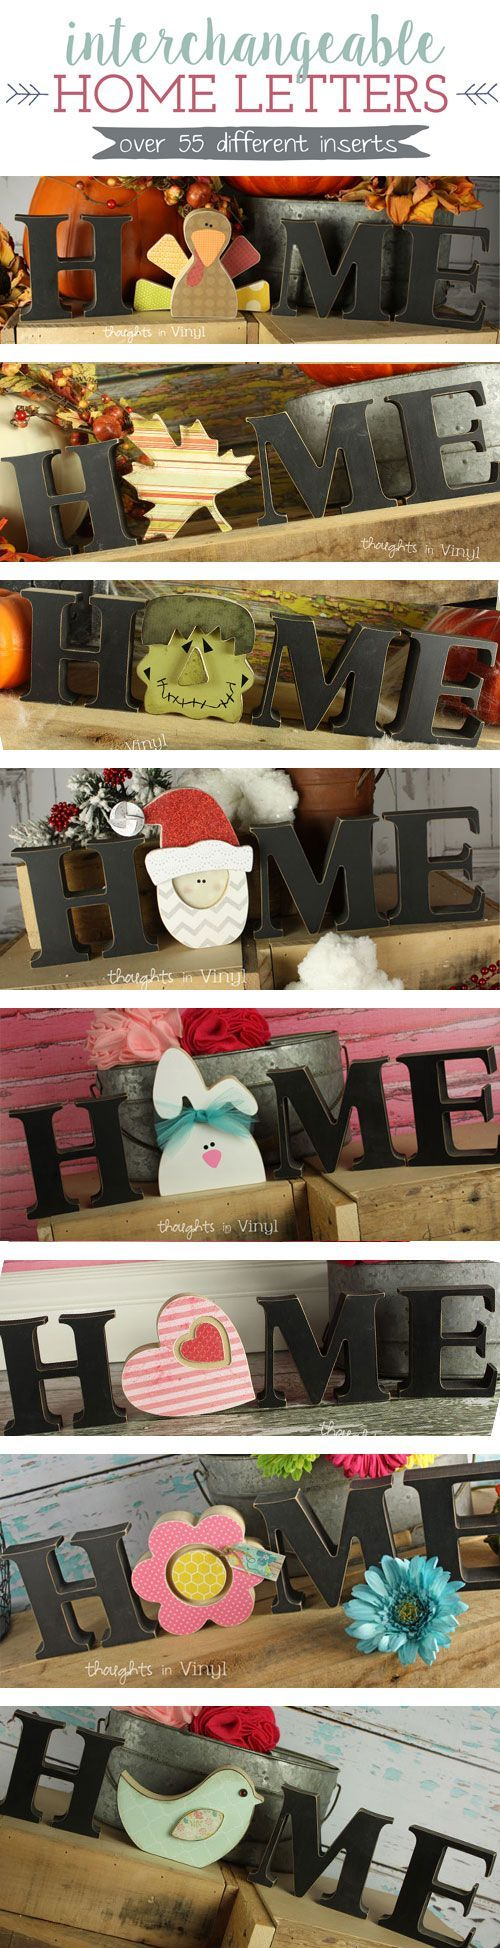 awesome Interchangeable Home Letters |  Over 55 different inserts to pick from!  Great f...